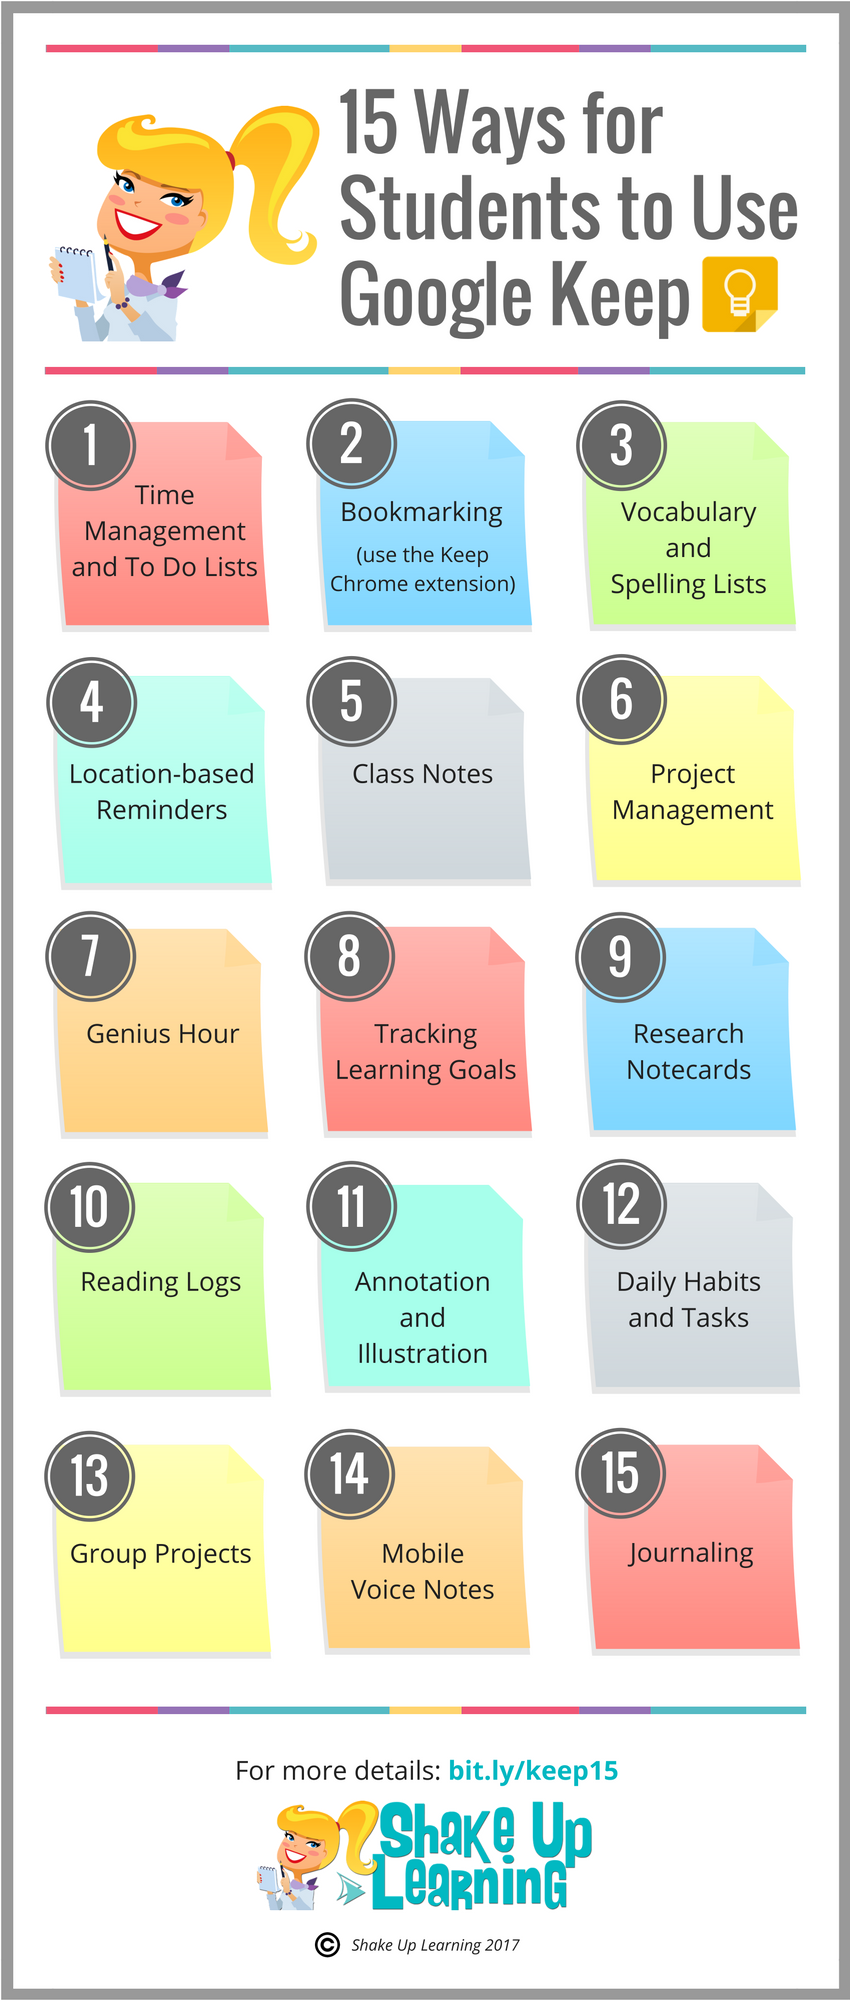 15 Ways for Students to Use Google Keep [infographic] | All